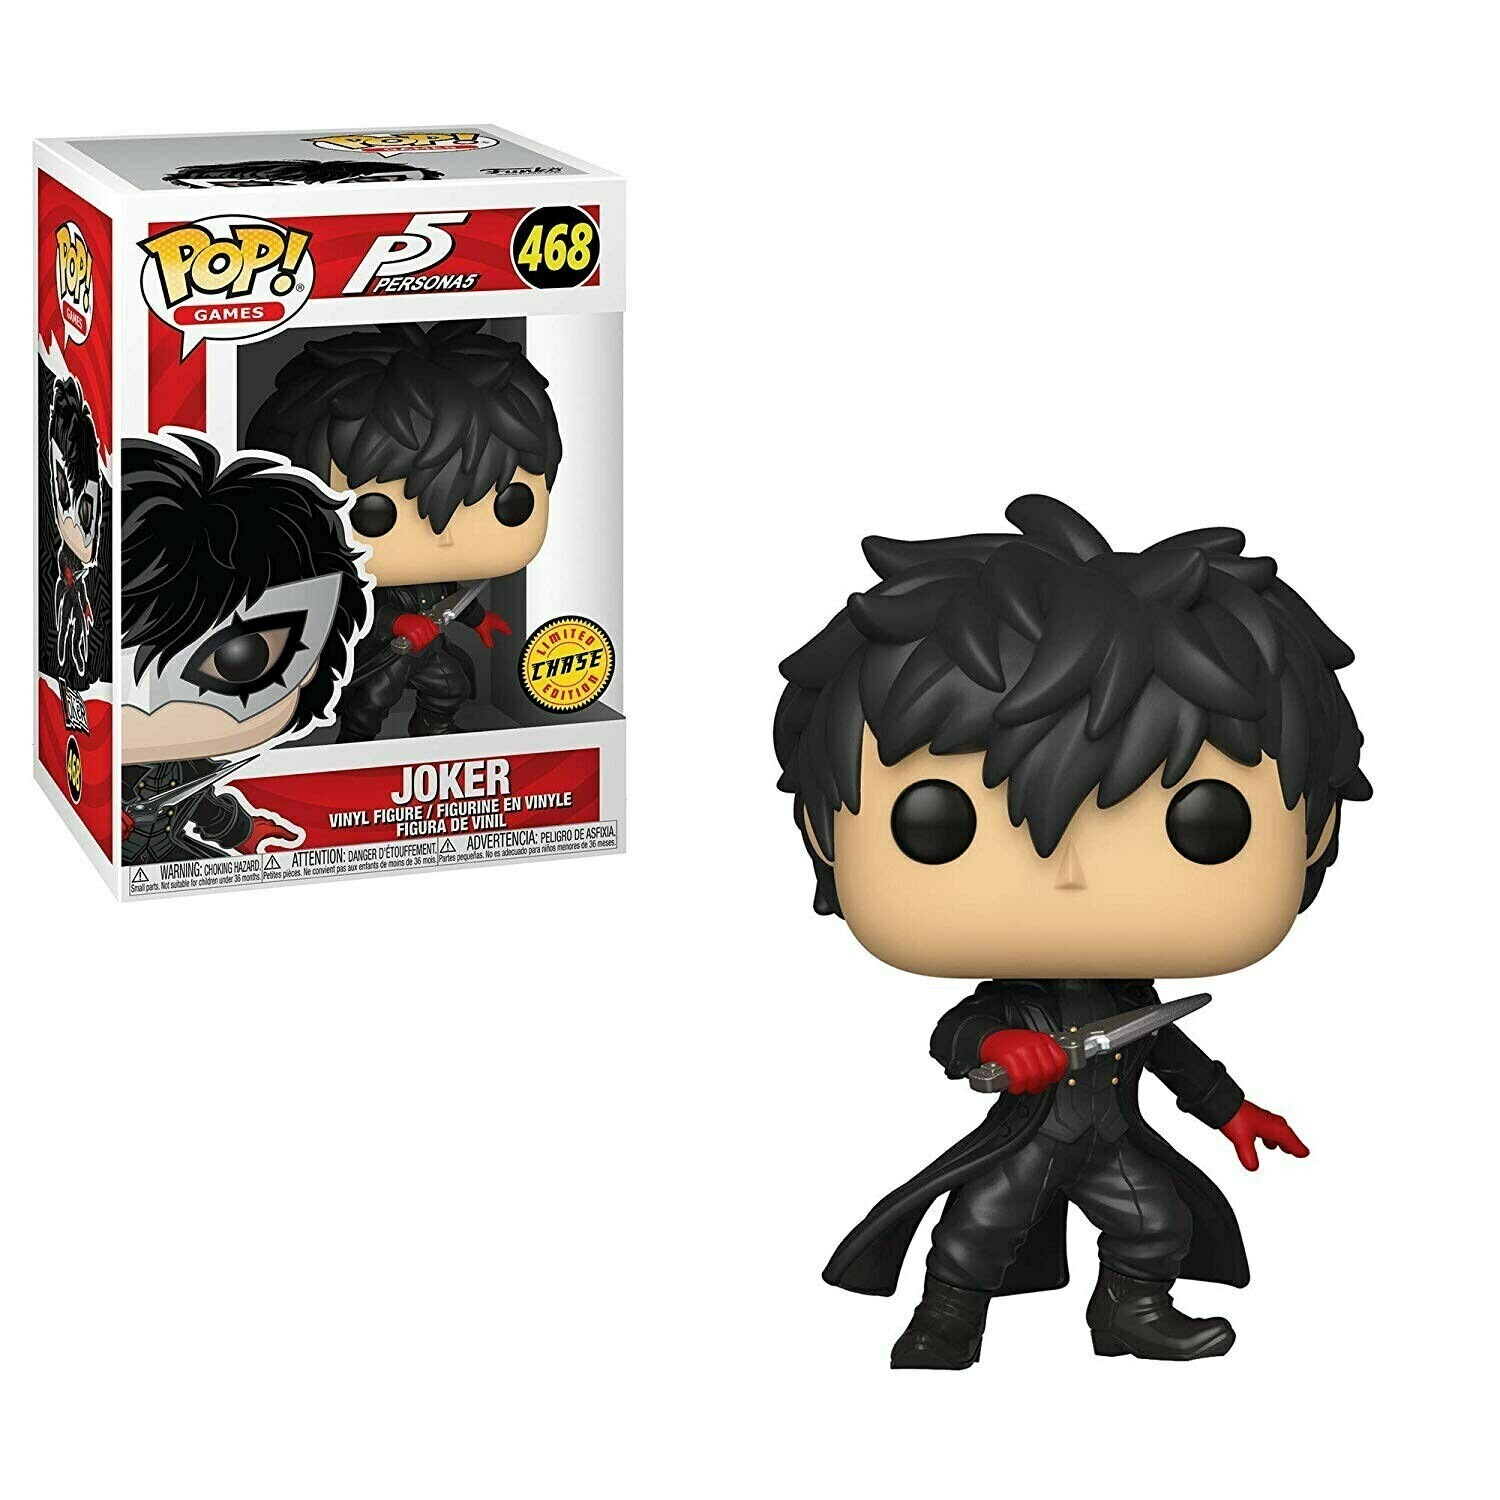 Persona 5 - Joker Chase Pop! Vinyl Figure​ Bundle of 6 (set of 6) Mystery